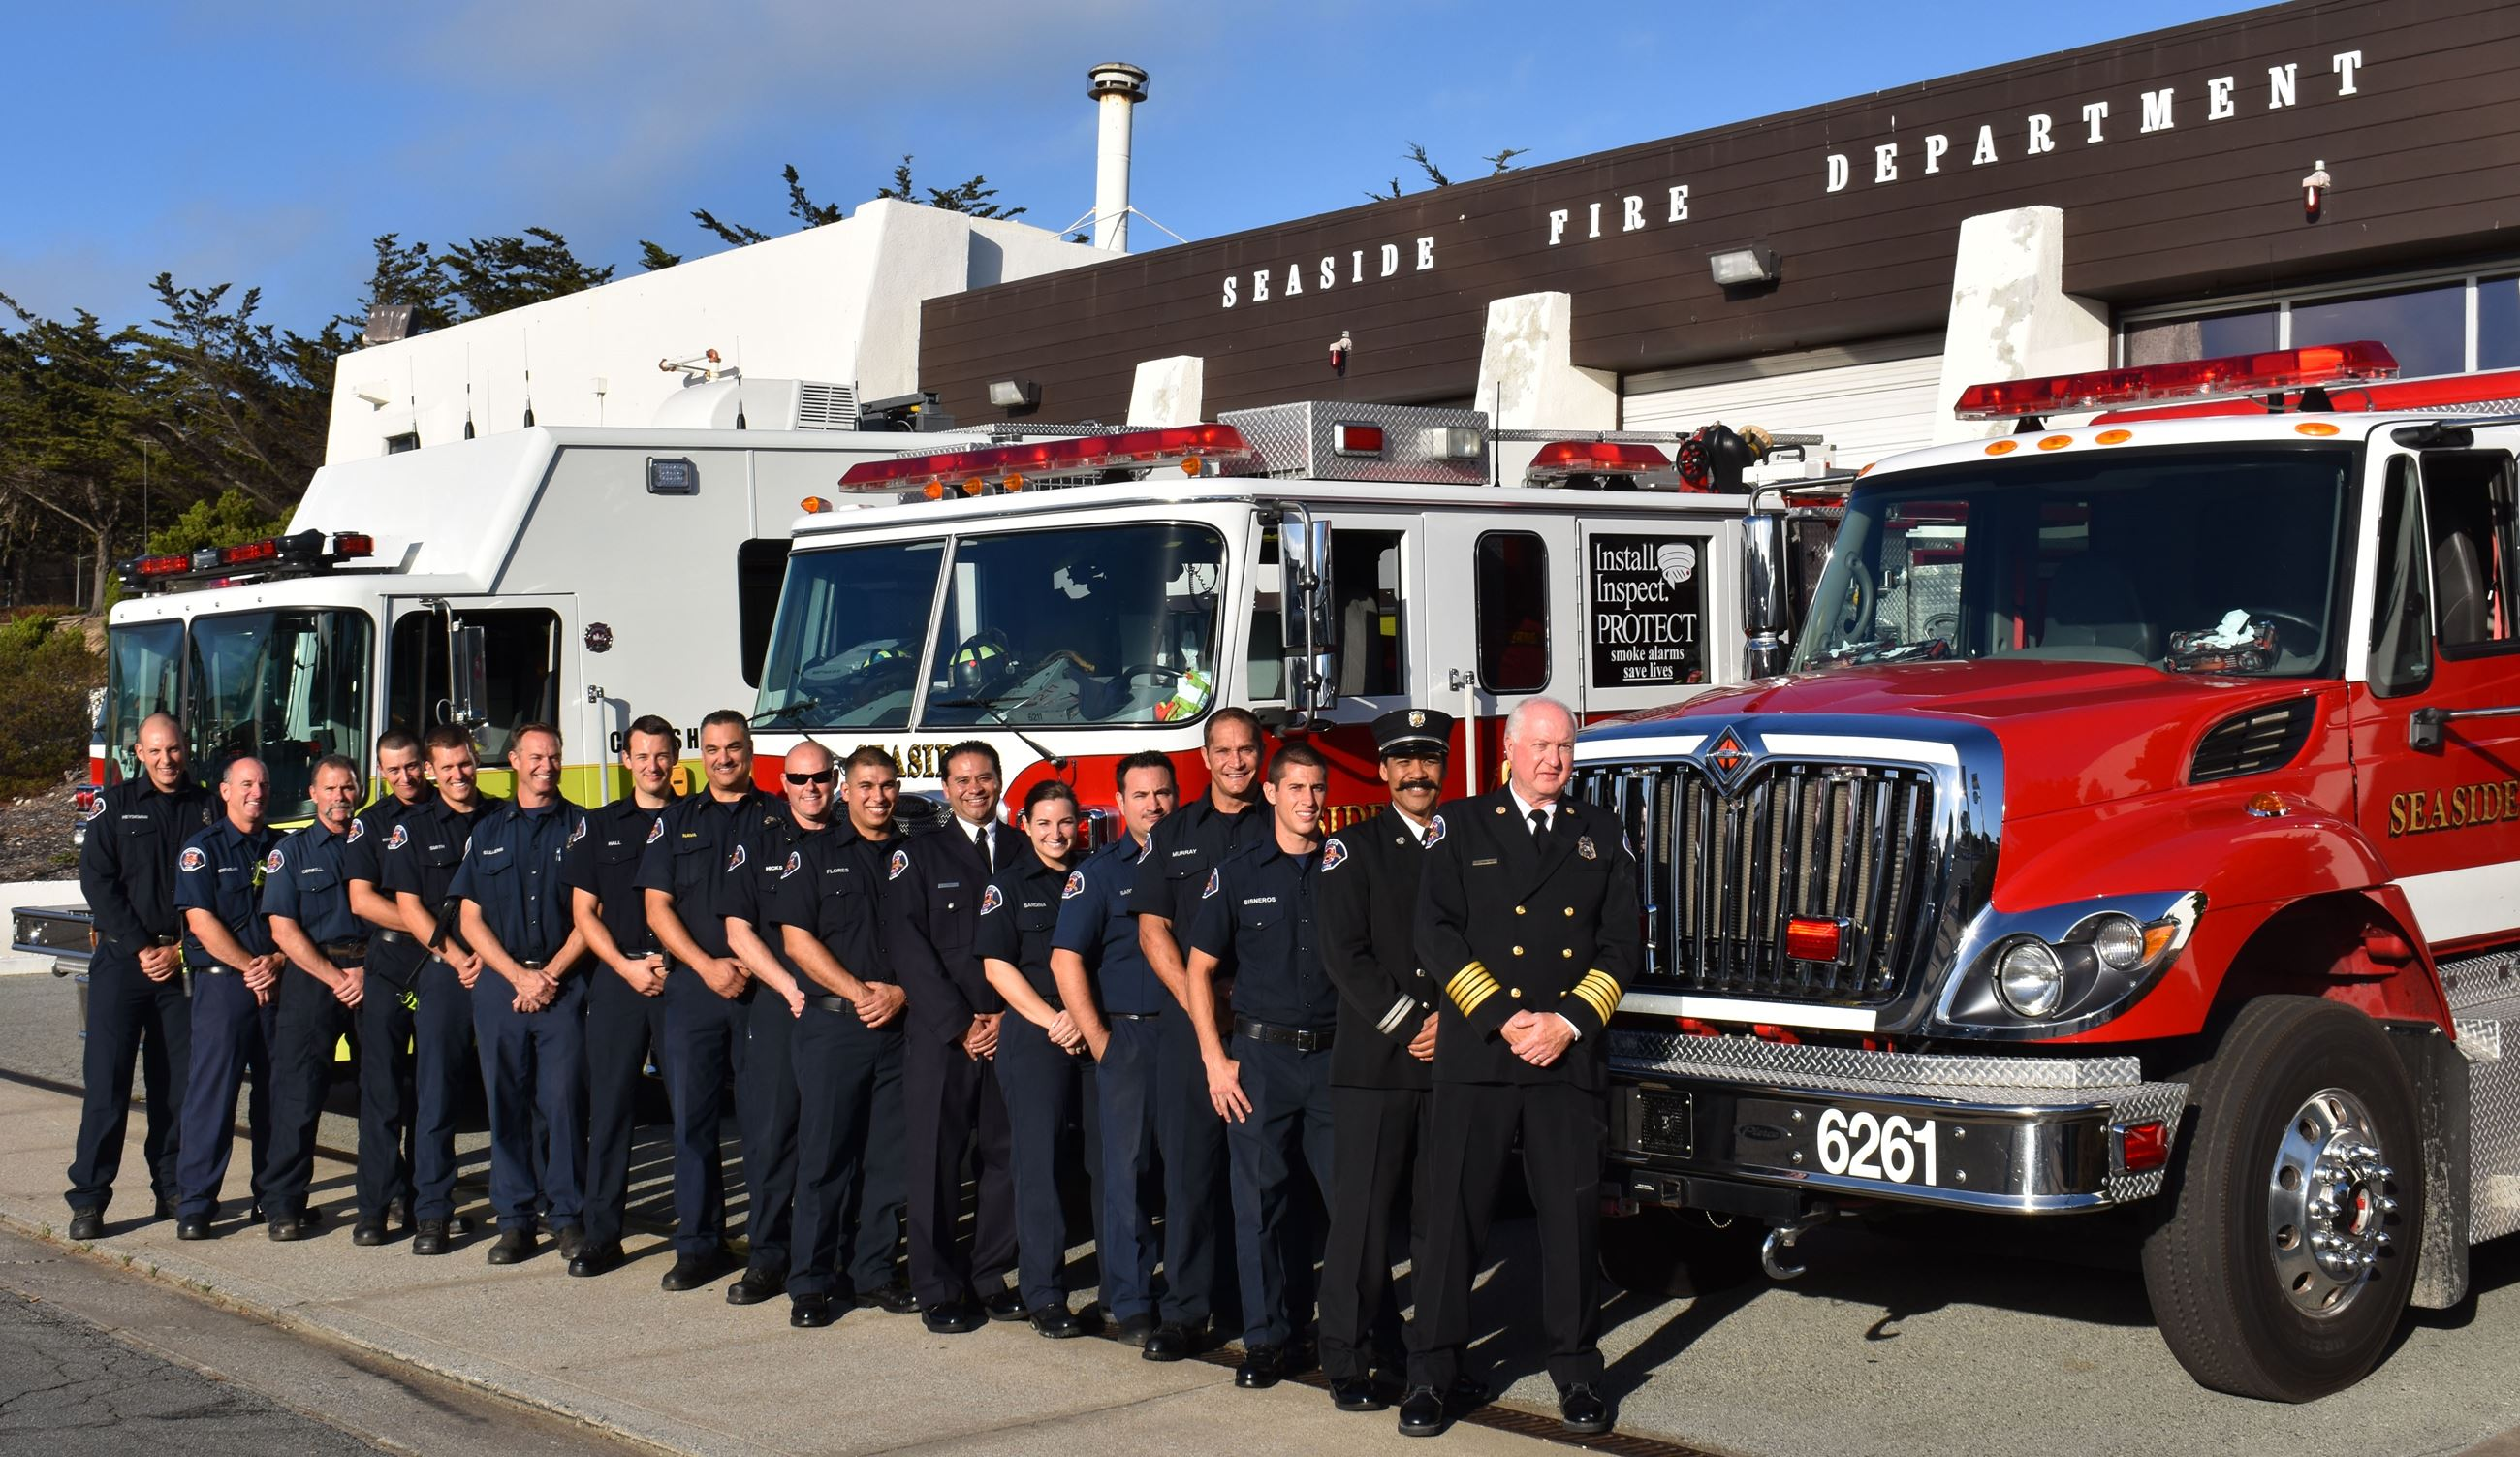 Group photo of the Seaside Fire Department Staff